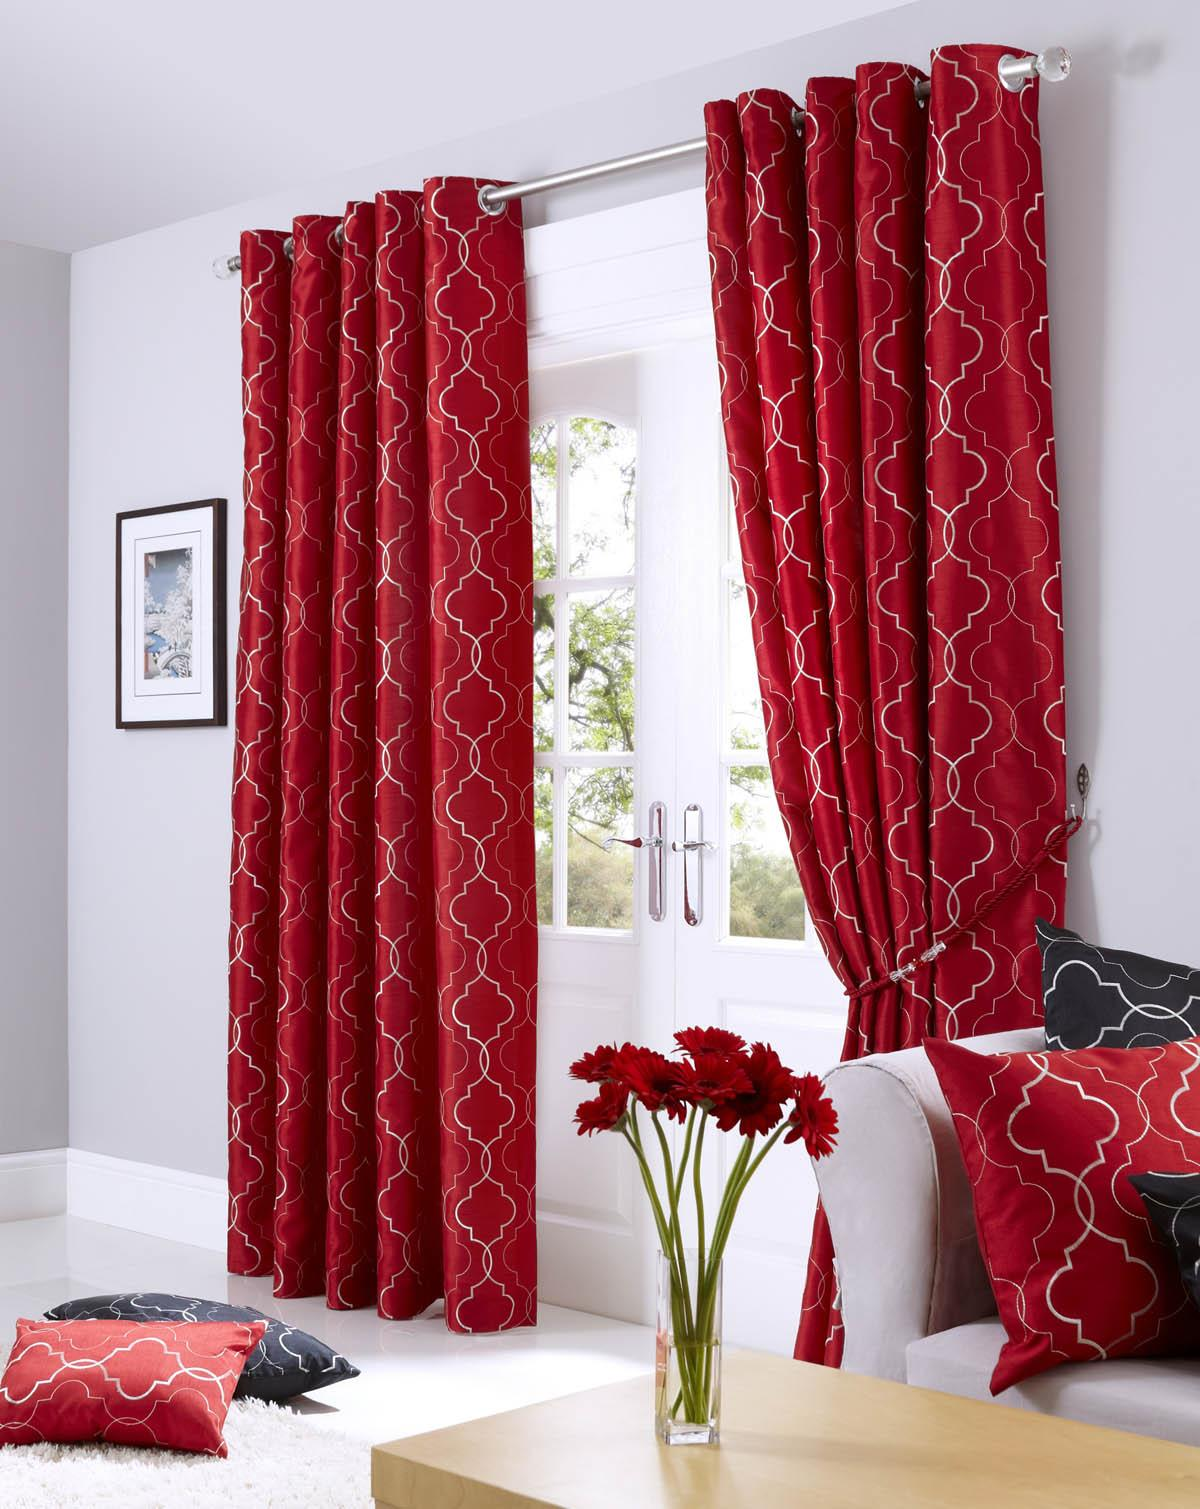 Midtown ready made eyelet curtains fully lined